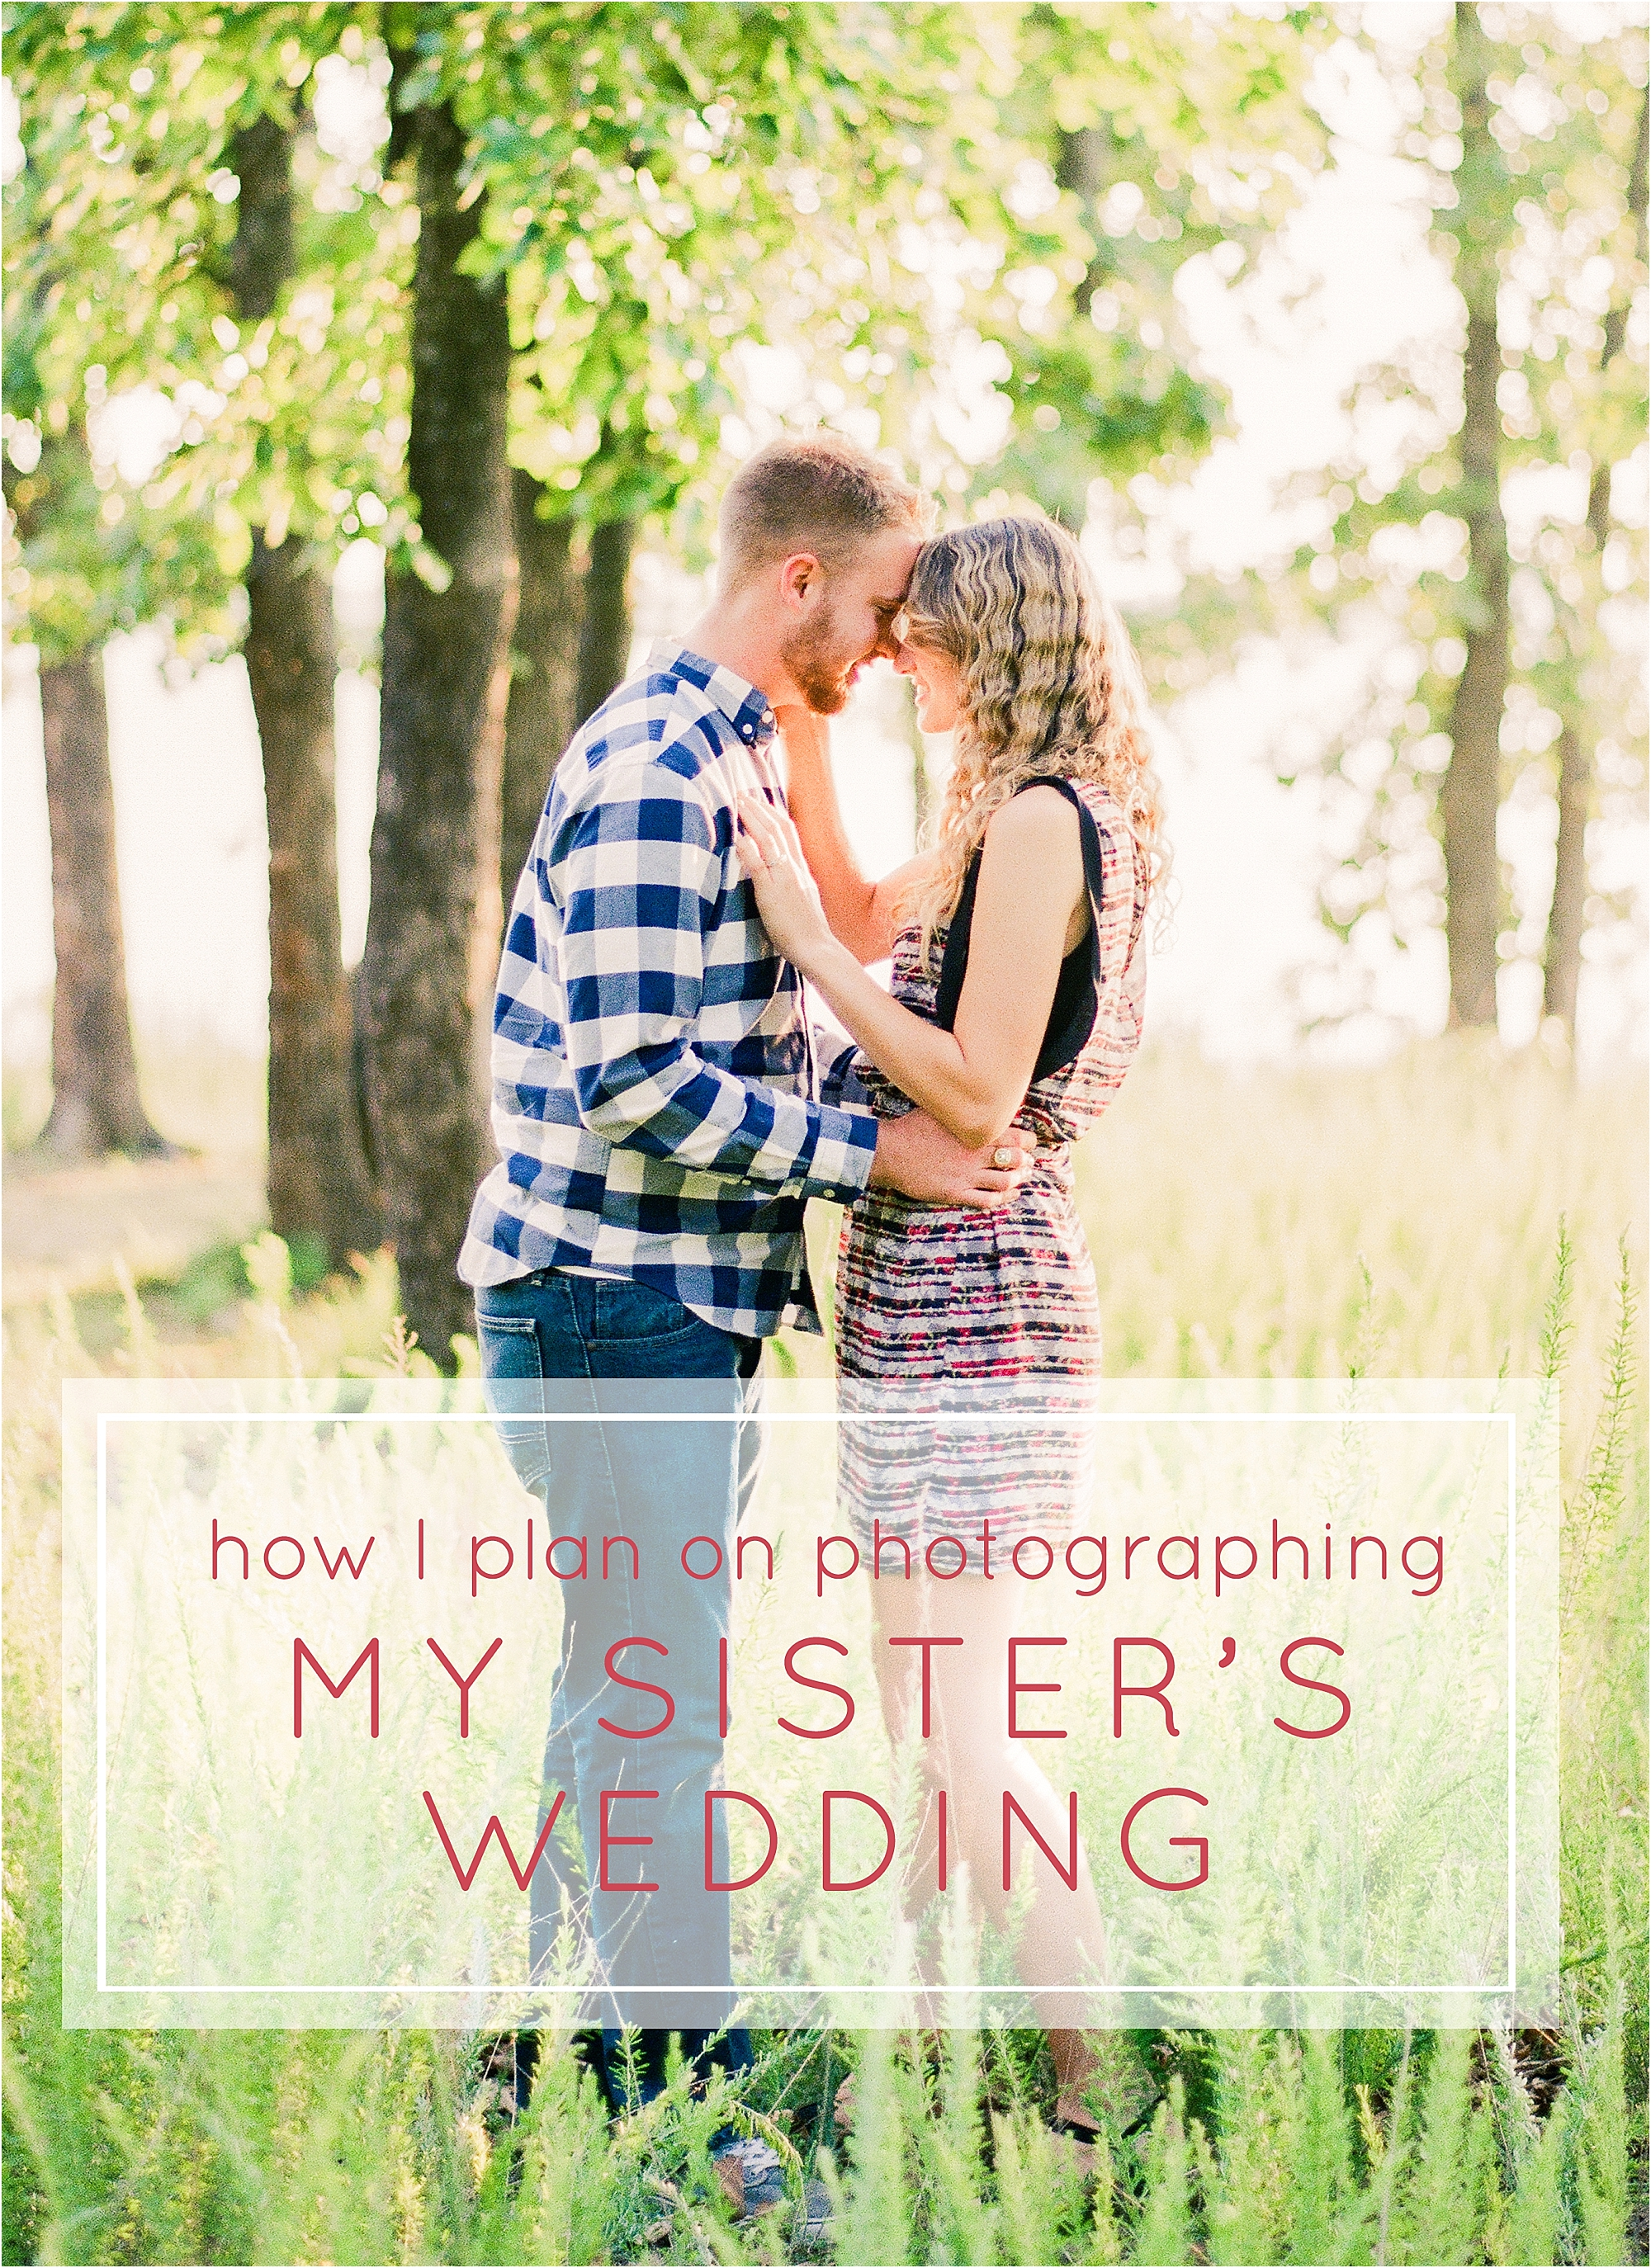 How I Plan on Photographing my Sister's Wedding - The Jordan Brittley Blog